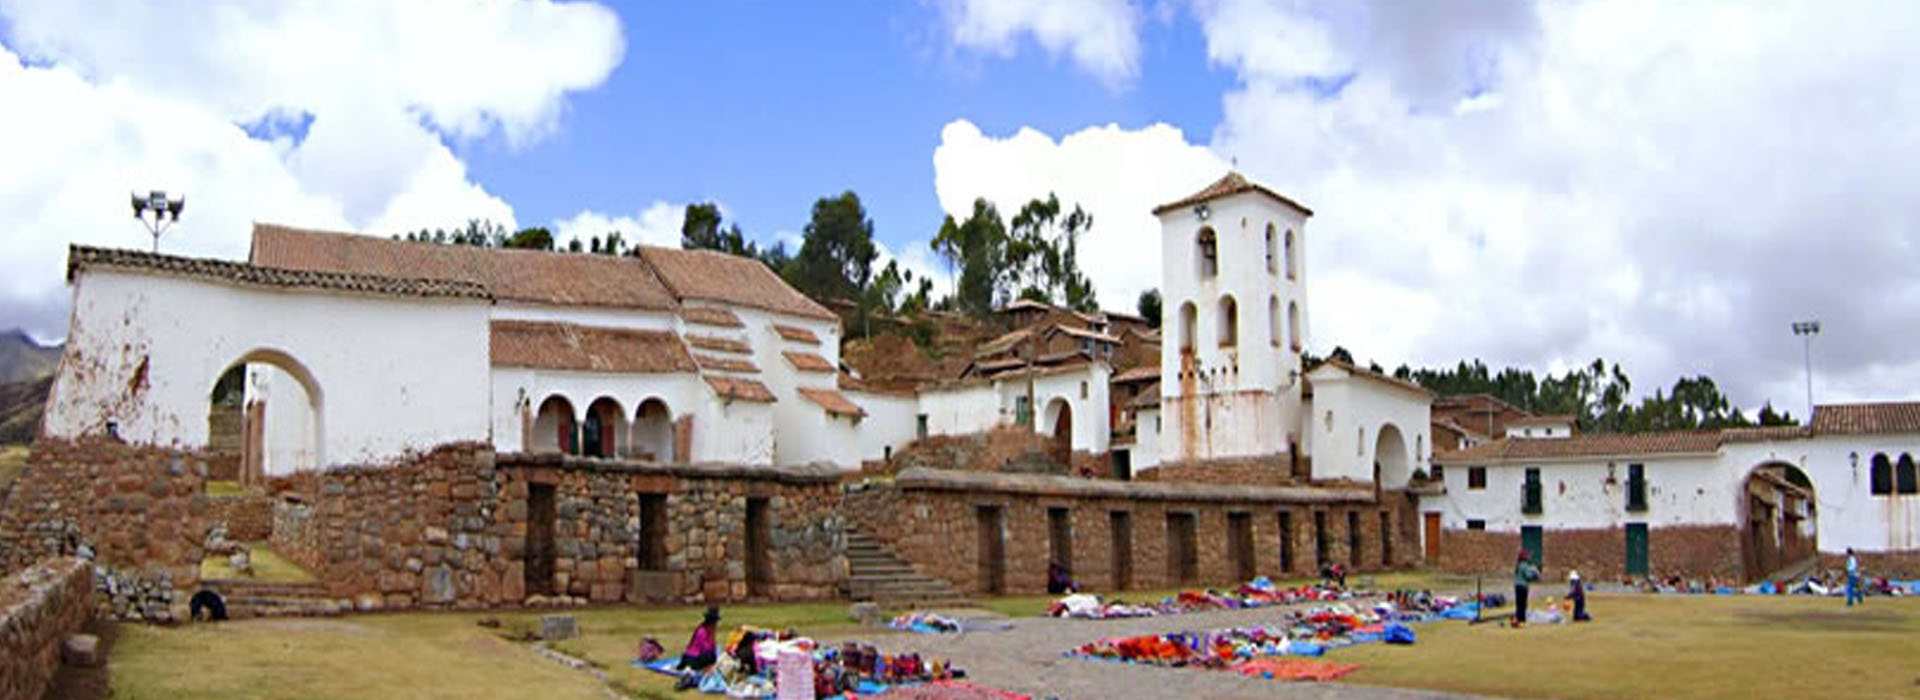 Sacred Valley of the Incas 1 day